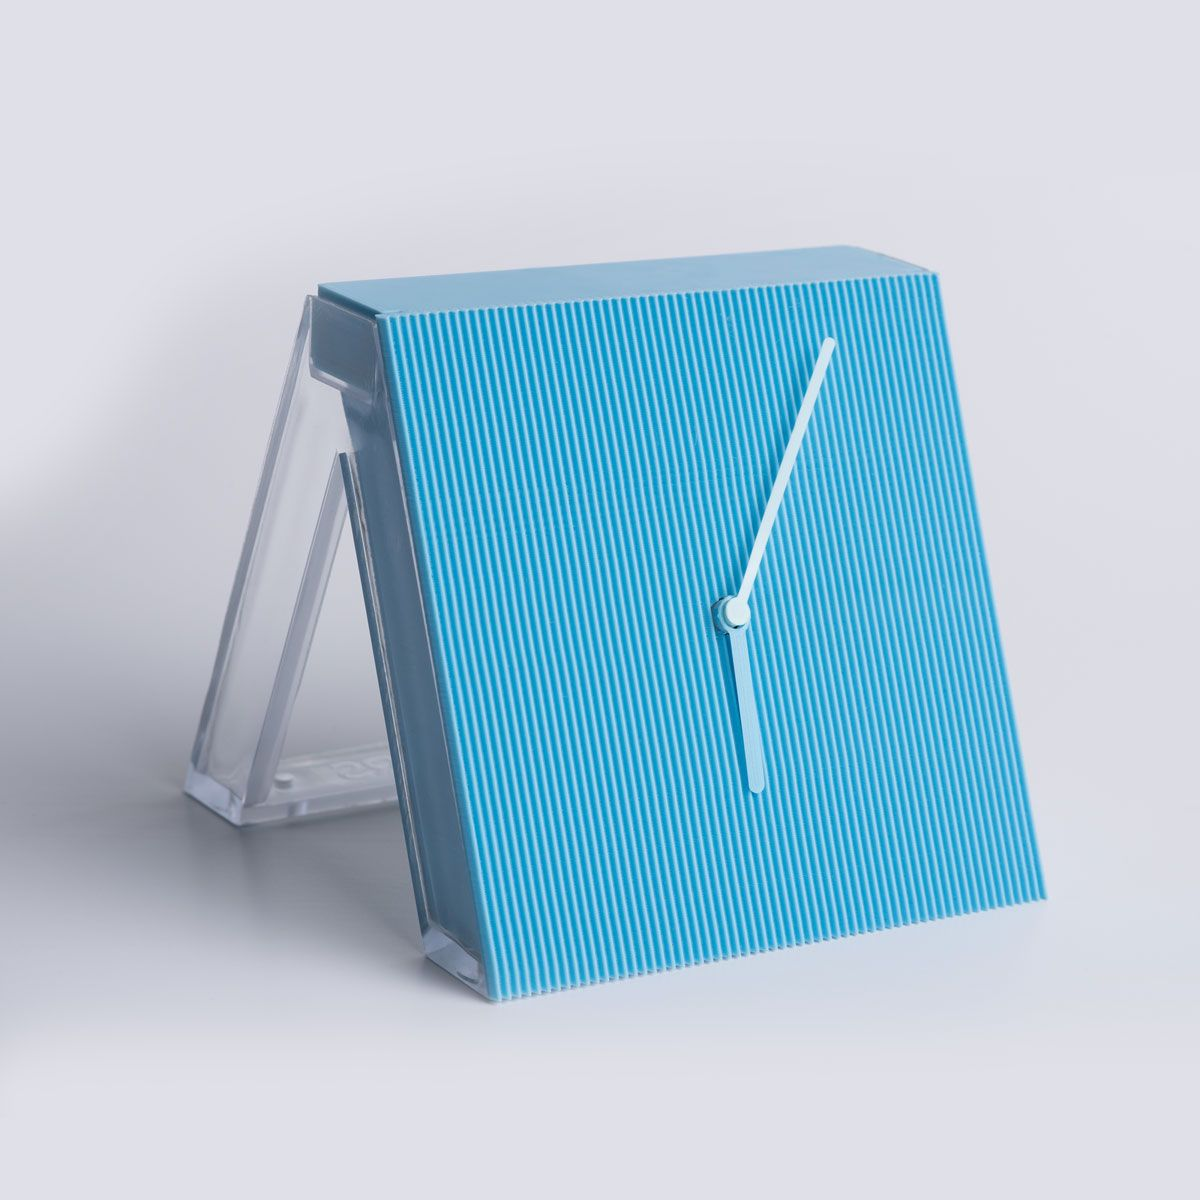 Times Square #1 [Tabletop clock]